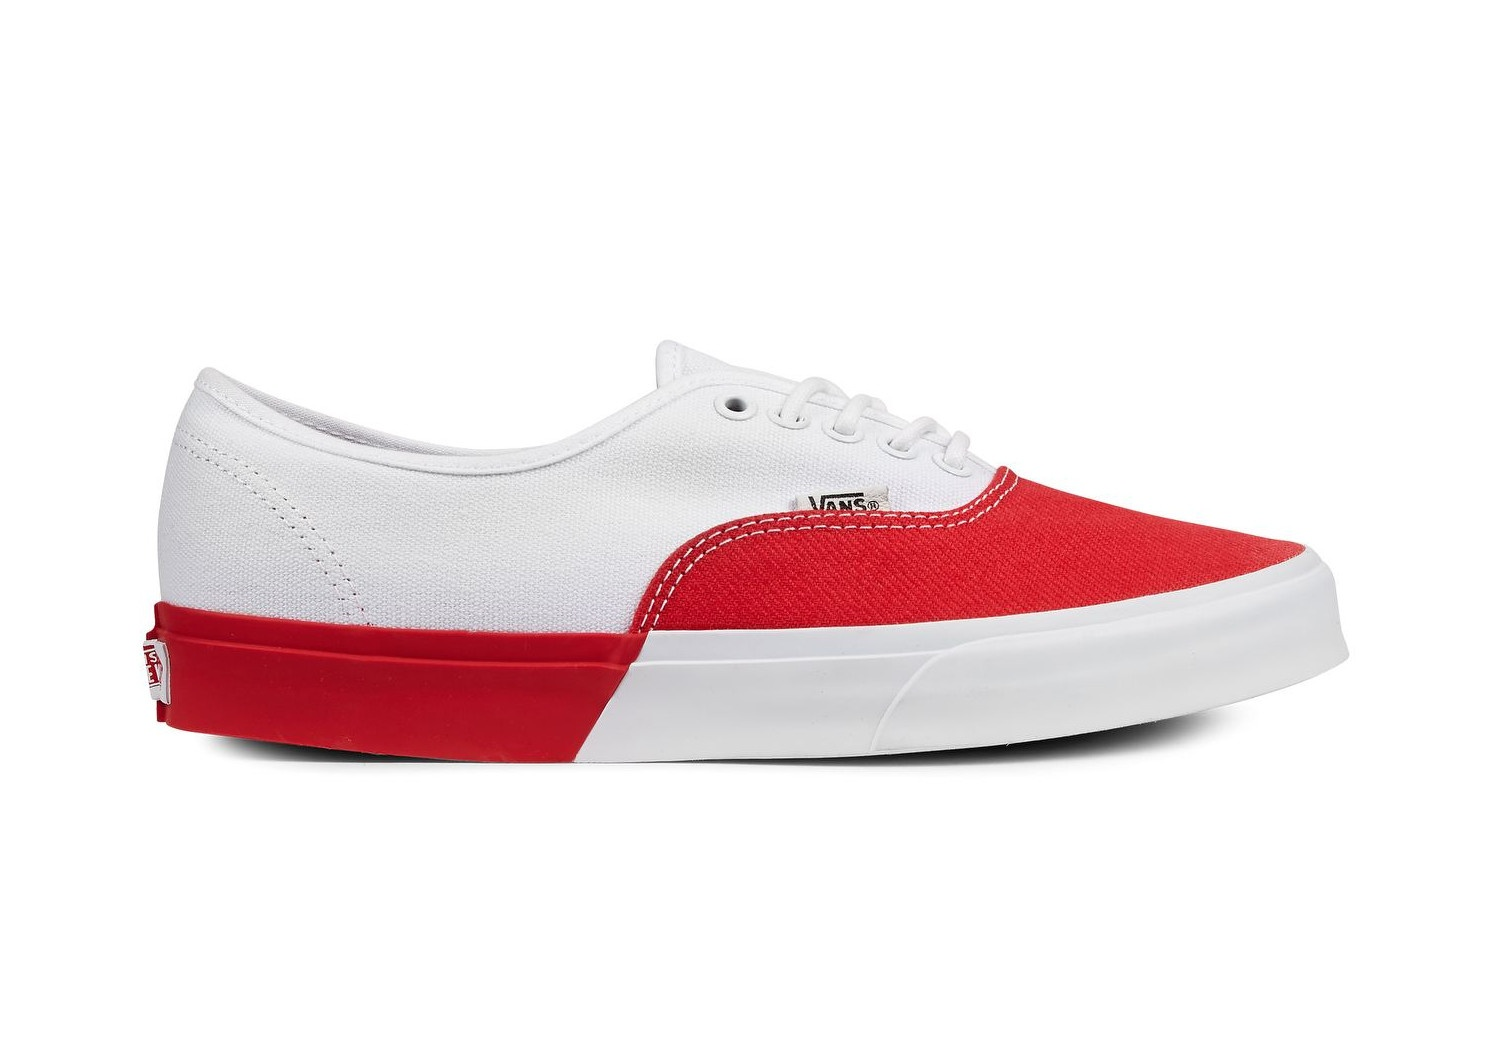 229cdd04000 Vans sneakers Authentic DX Blocked dames wit/rood - Internet ...